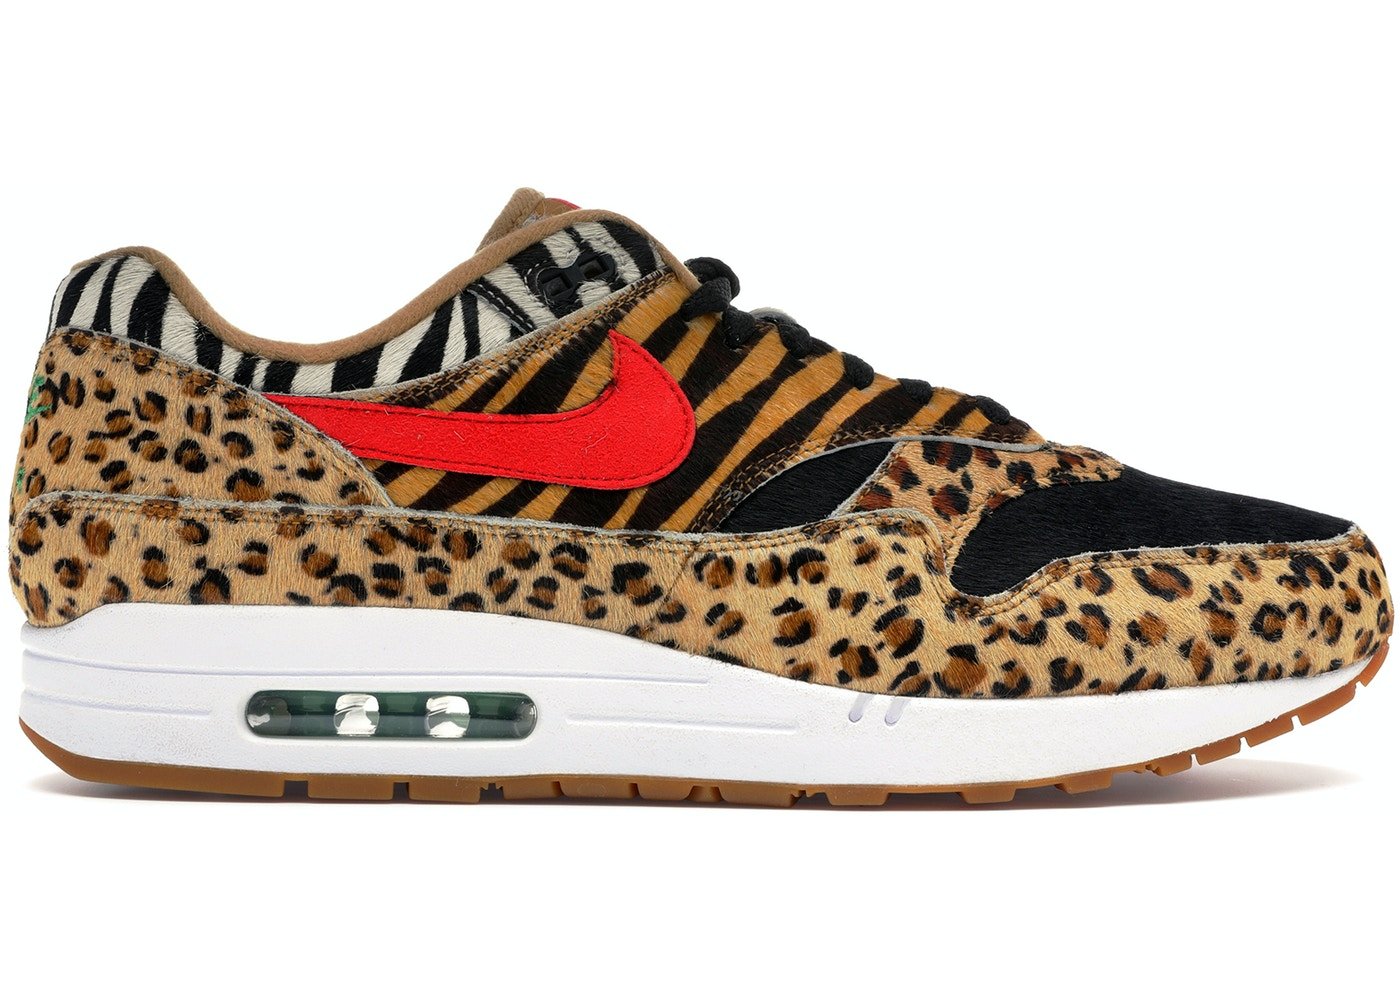 niska cena kupuję teraz najtańszy Air Max 1 Atmos Animal Pack 2.0 (2018 All Black Box)